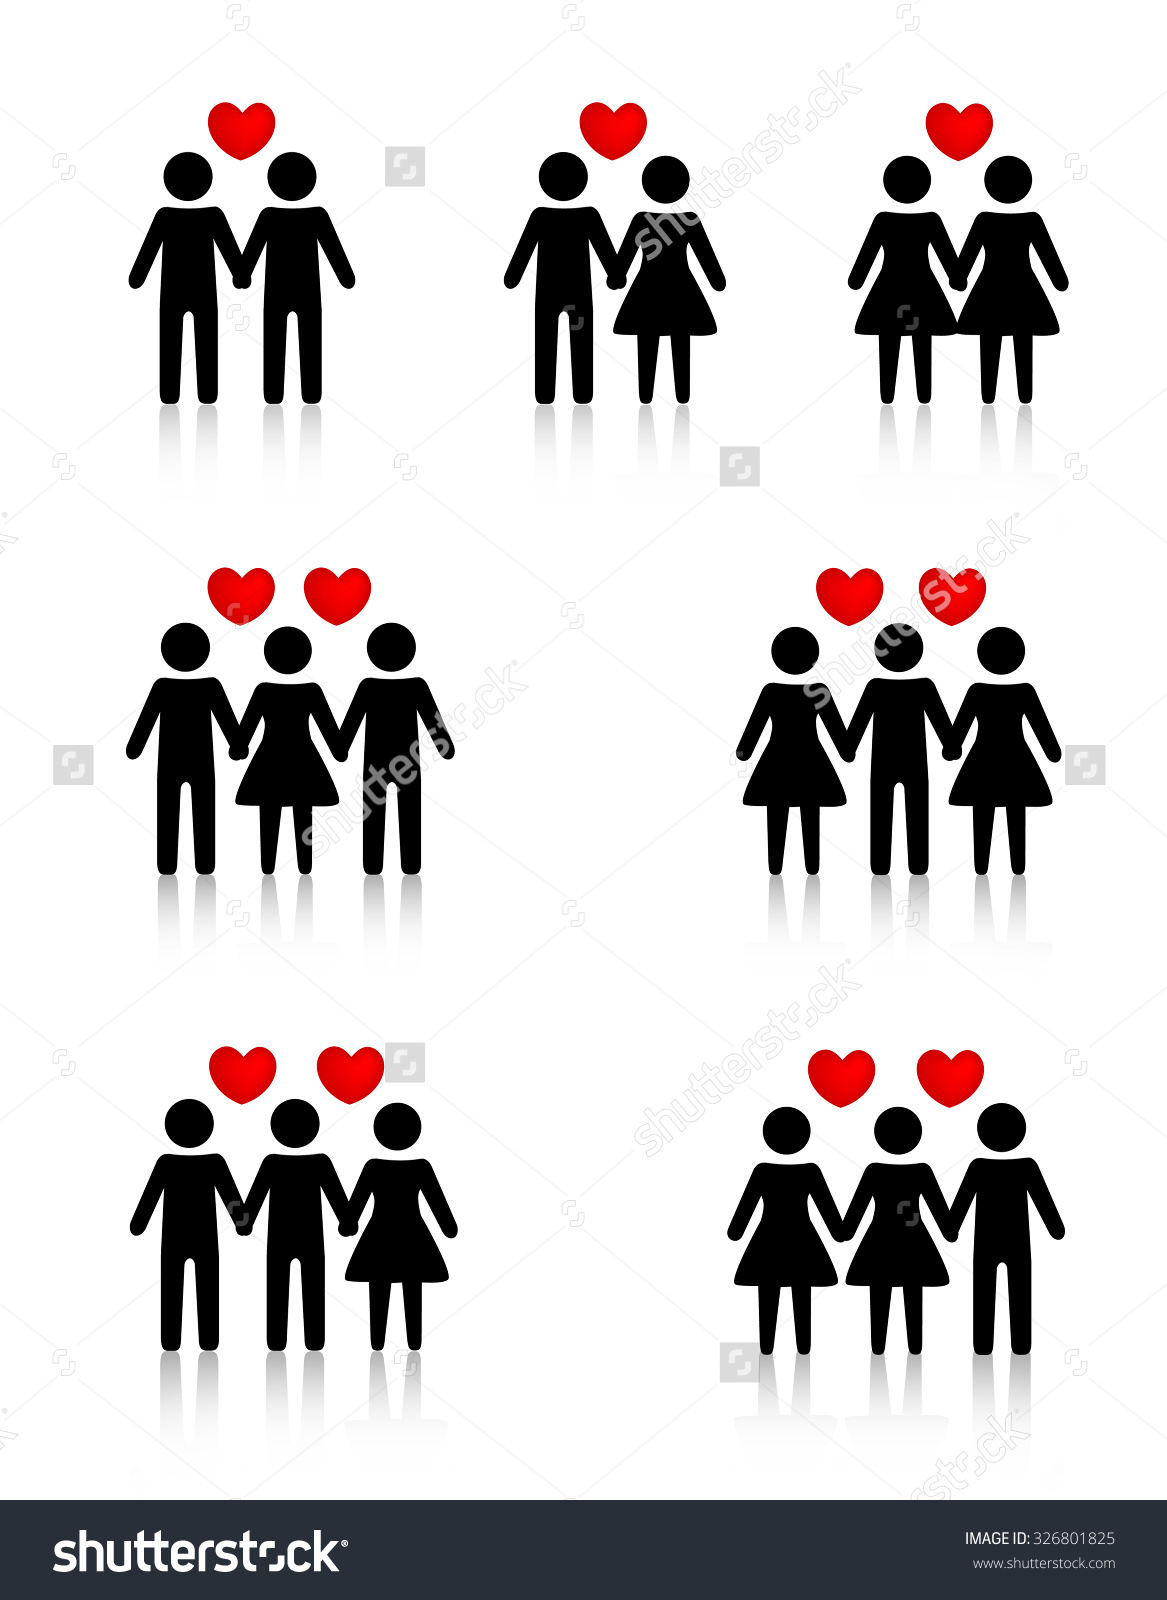 Clipart Collection Representing Human Love Sexual Stock.